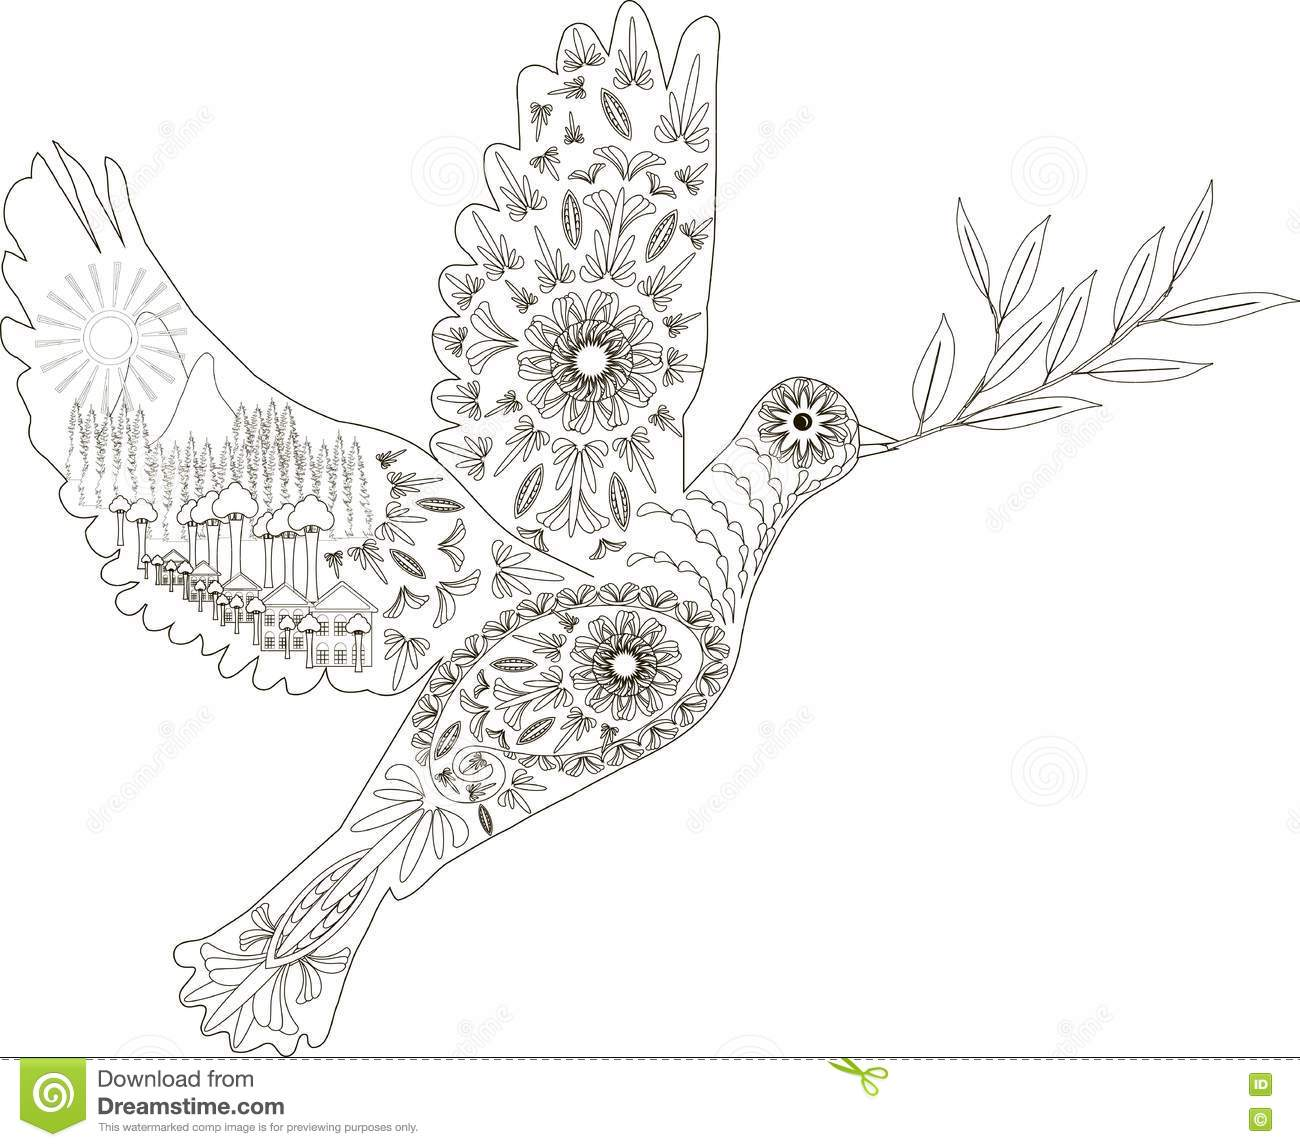 free vector graphic bird branch dove flight olive